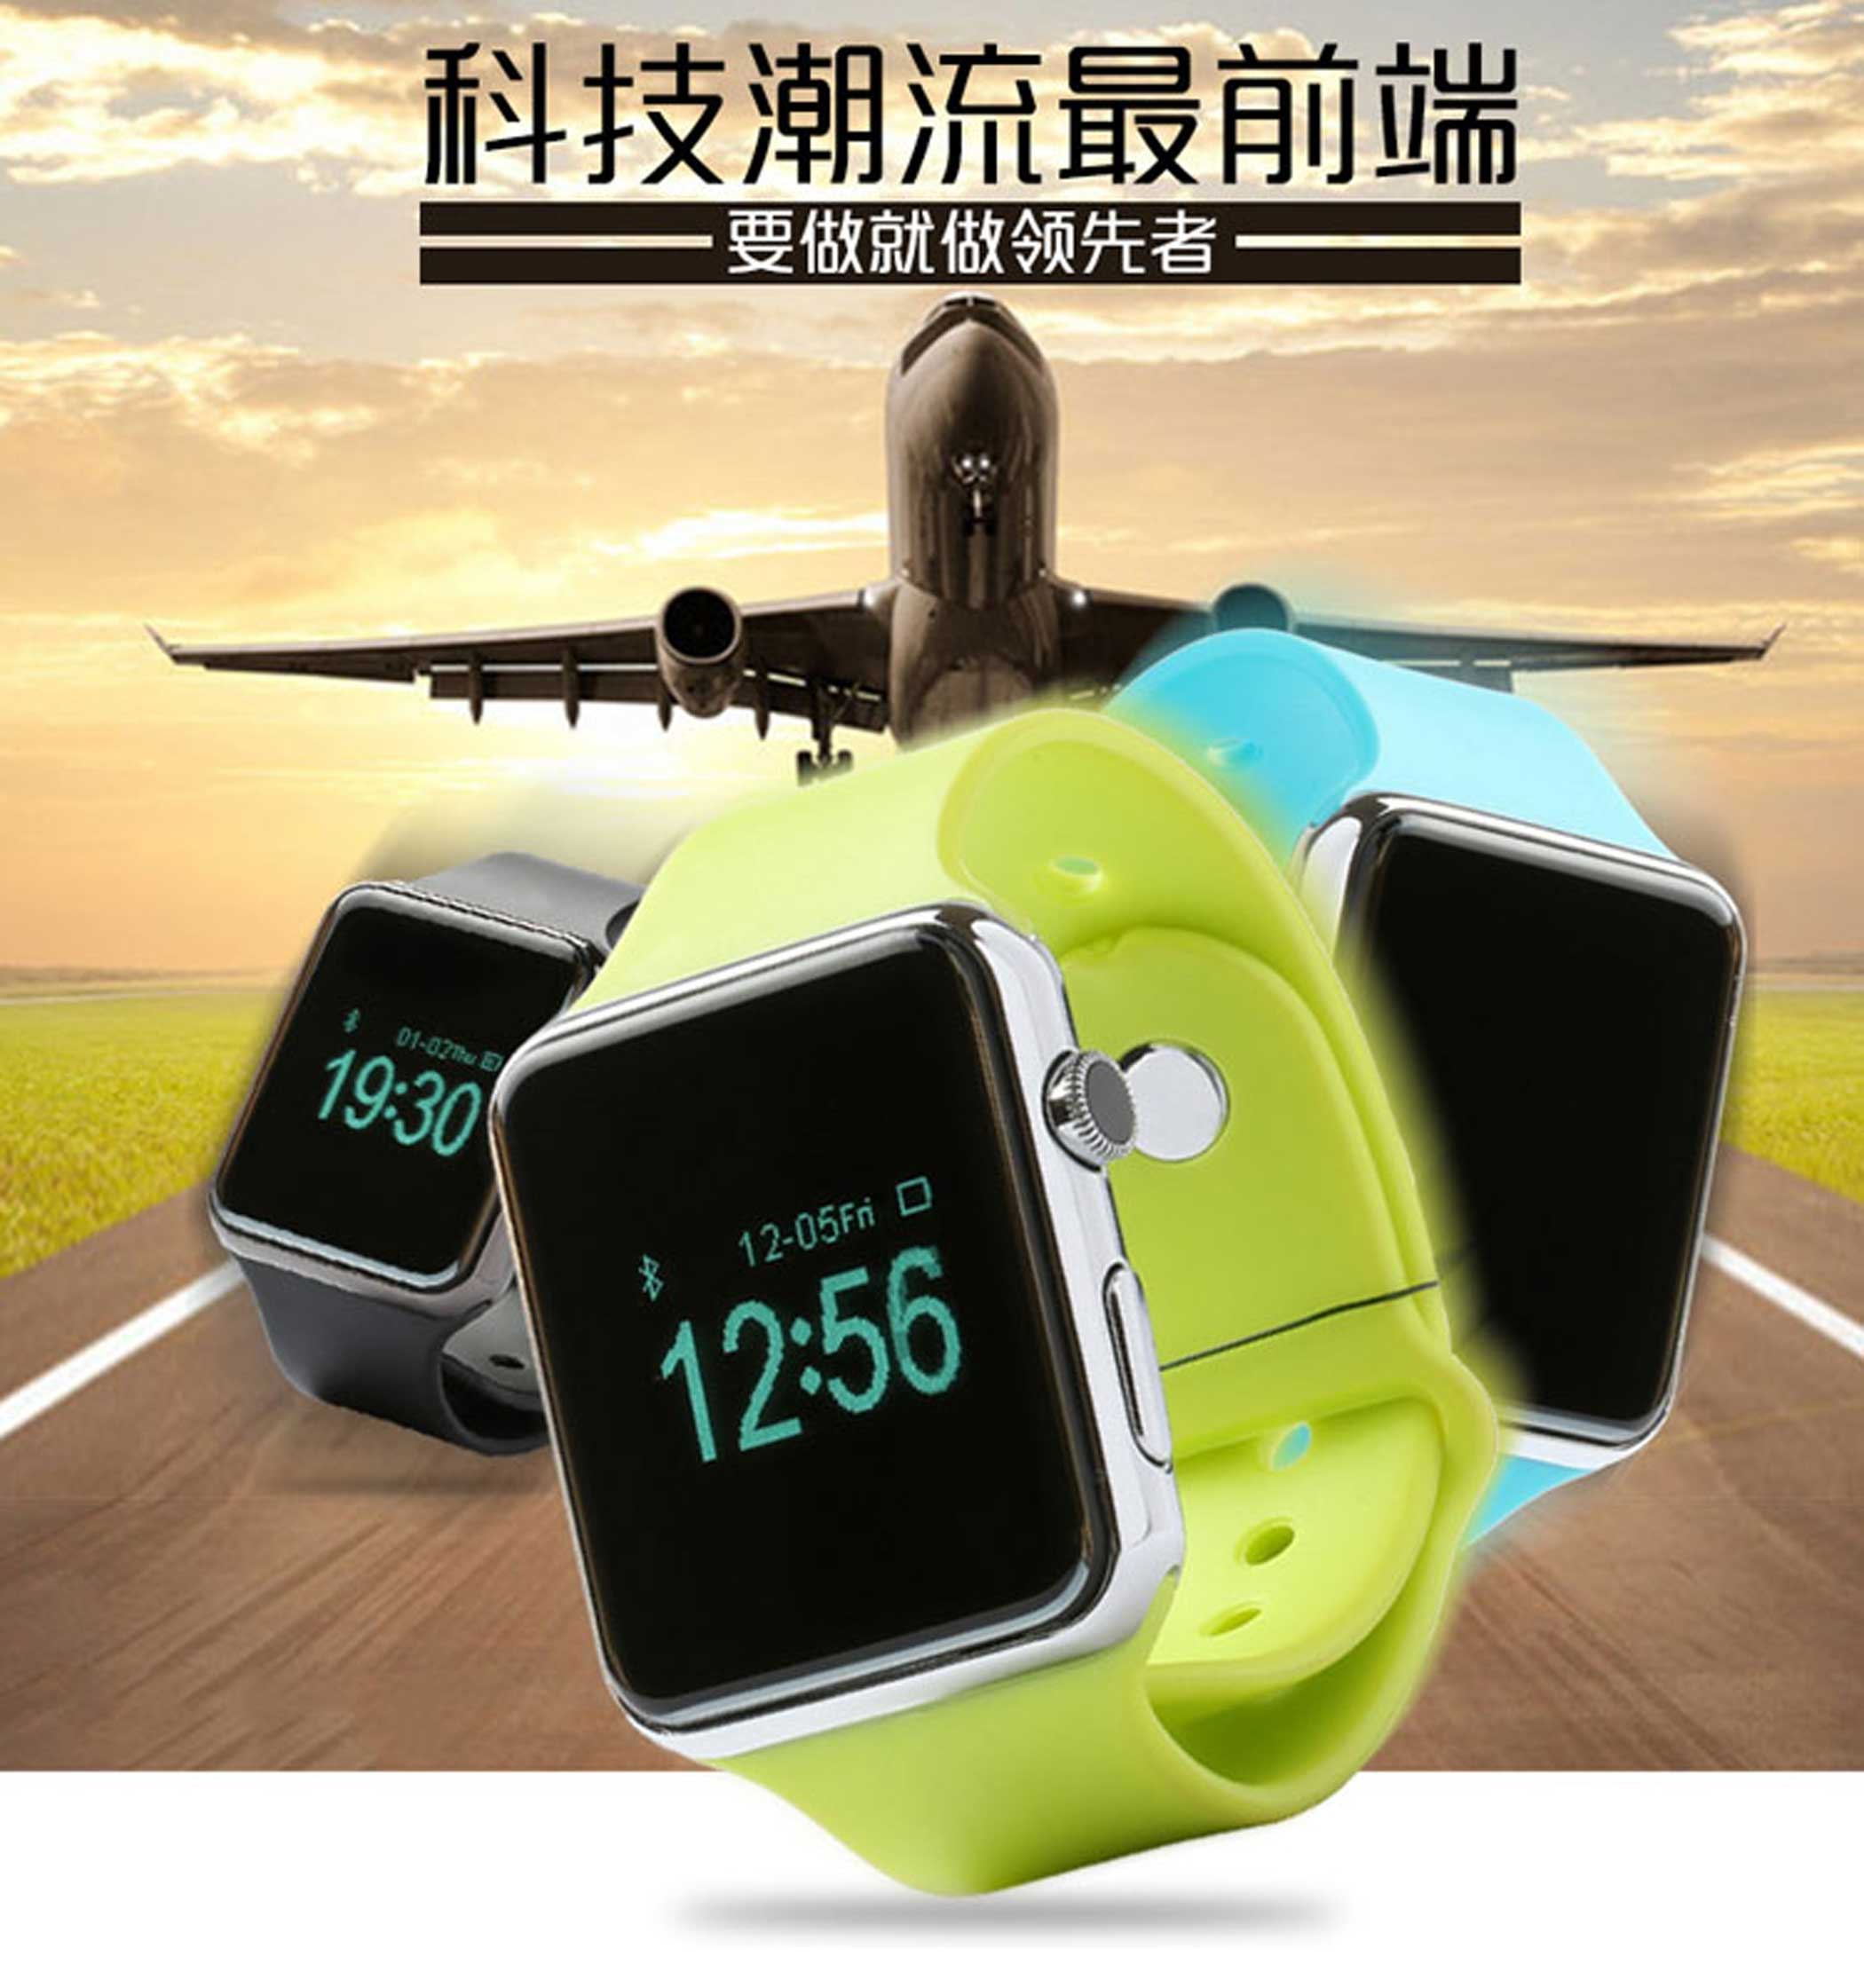 Another ad for Gemini TB Creative Design's iWatch ($156).